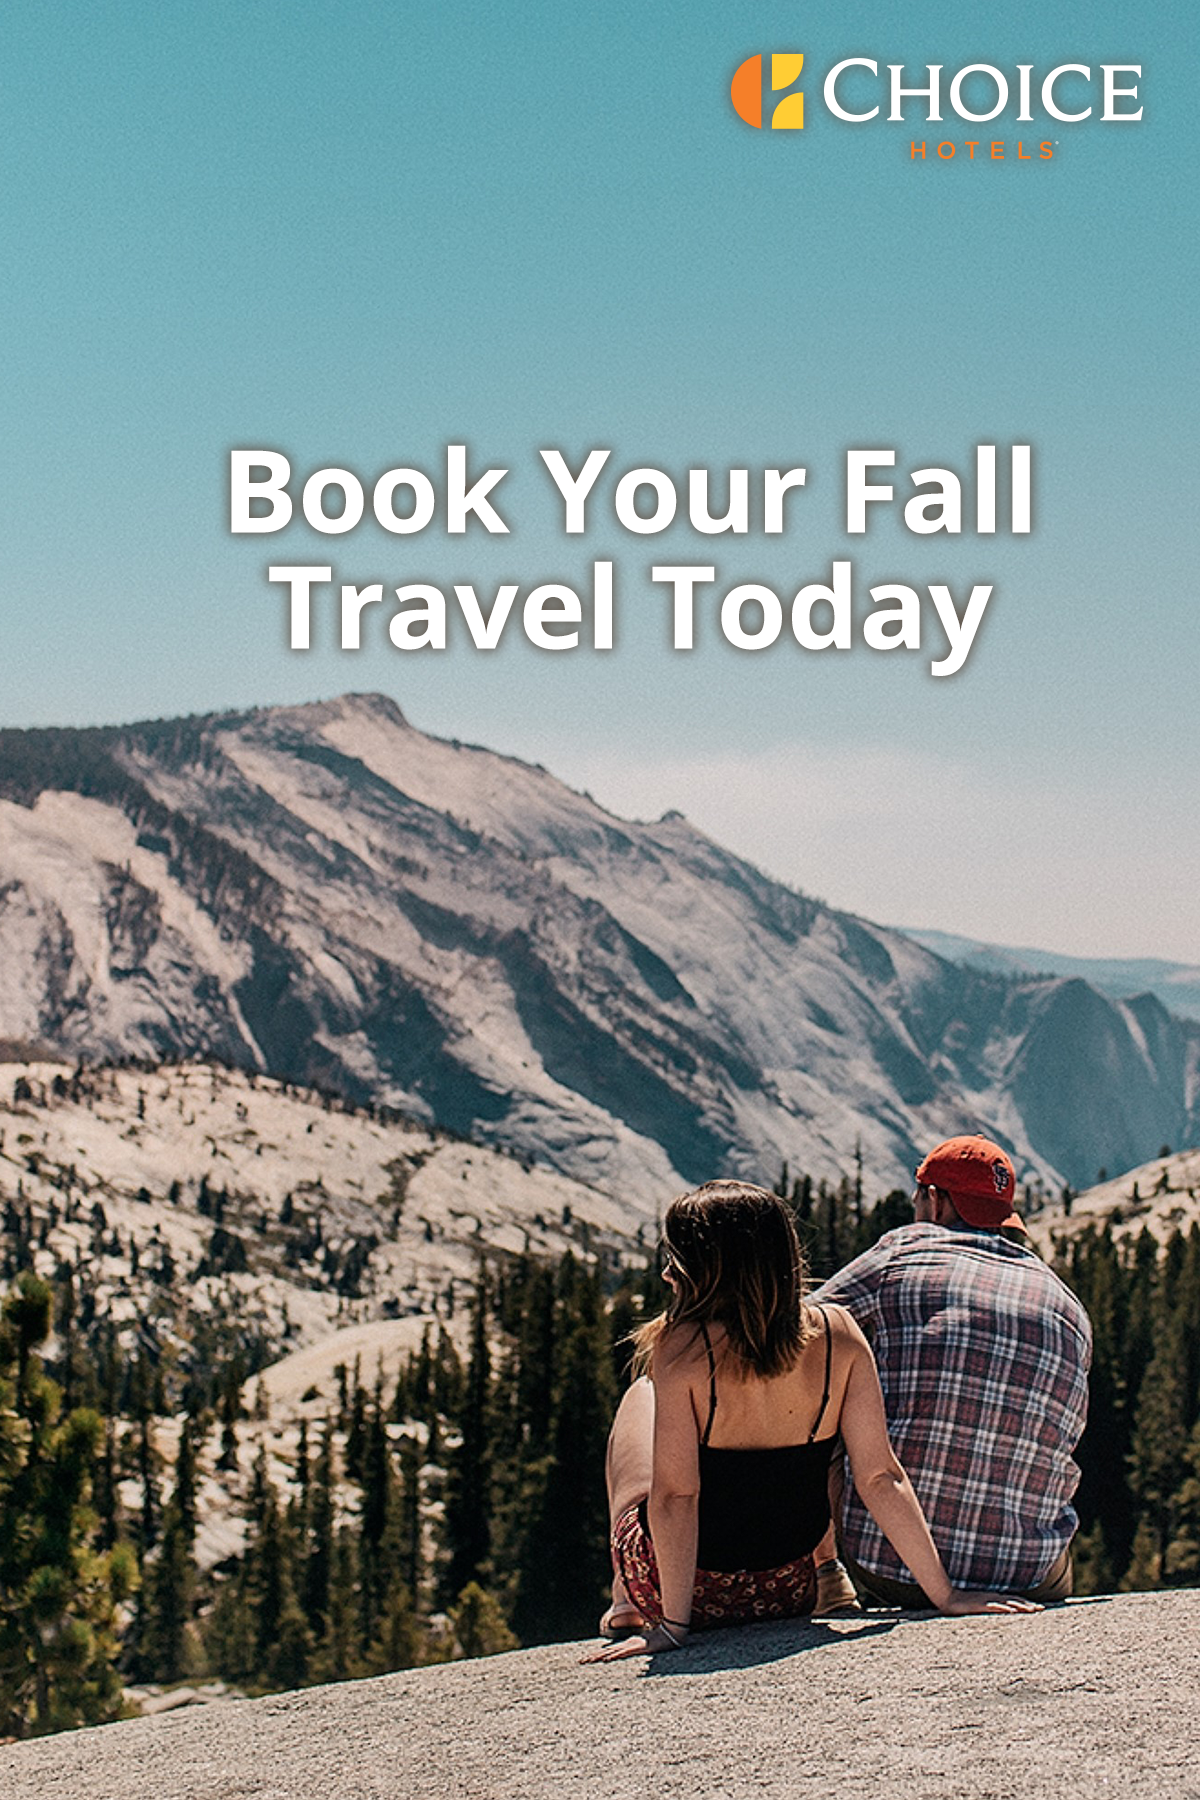 Adventure Awaits This Fall. Book Direct At ChoiceHotels